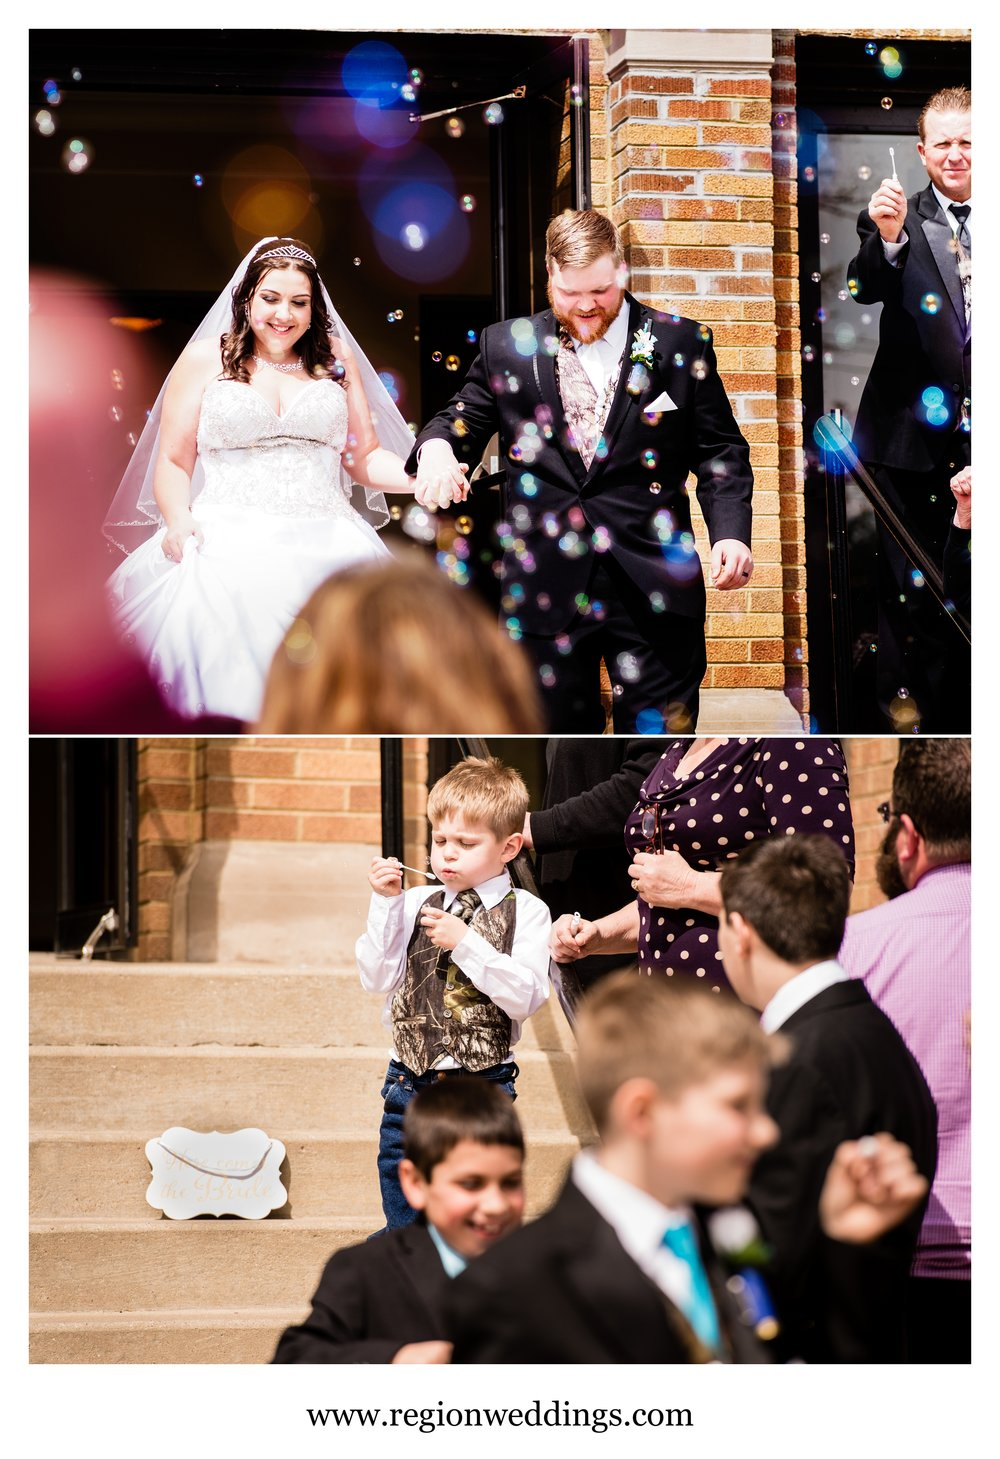 A bubble exit for the bride and groom at Holy Name Catholic Church in Cedar Lake.